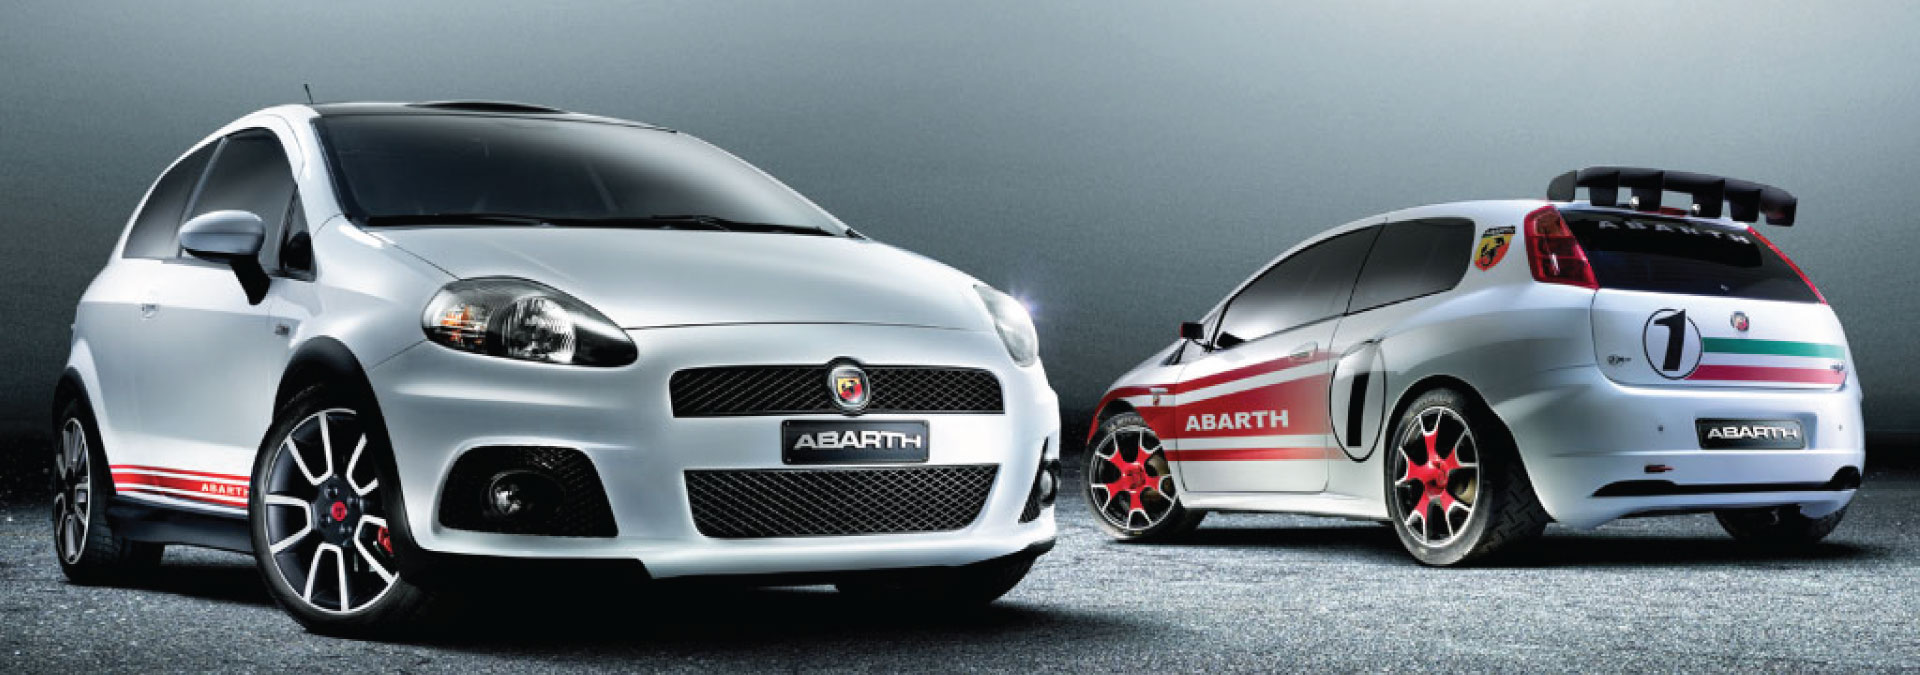 fiat 500 and abarth fiat tuning - mainly for our European clientele